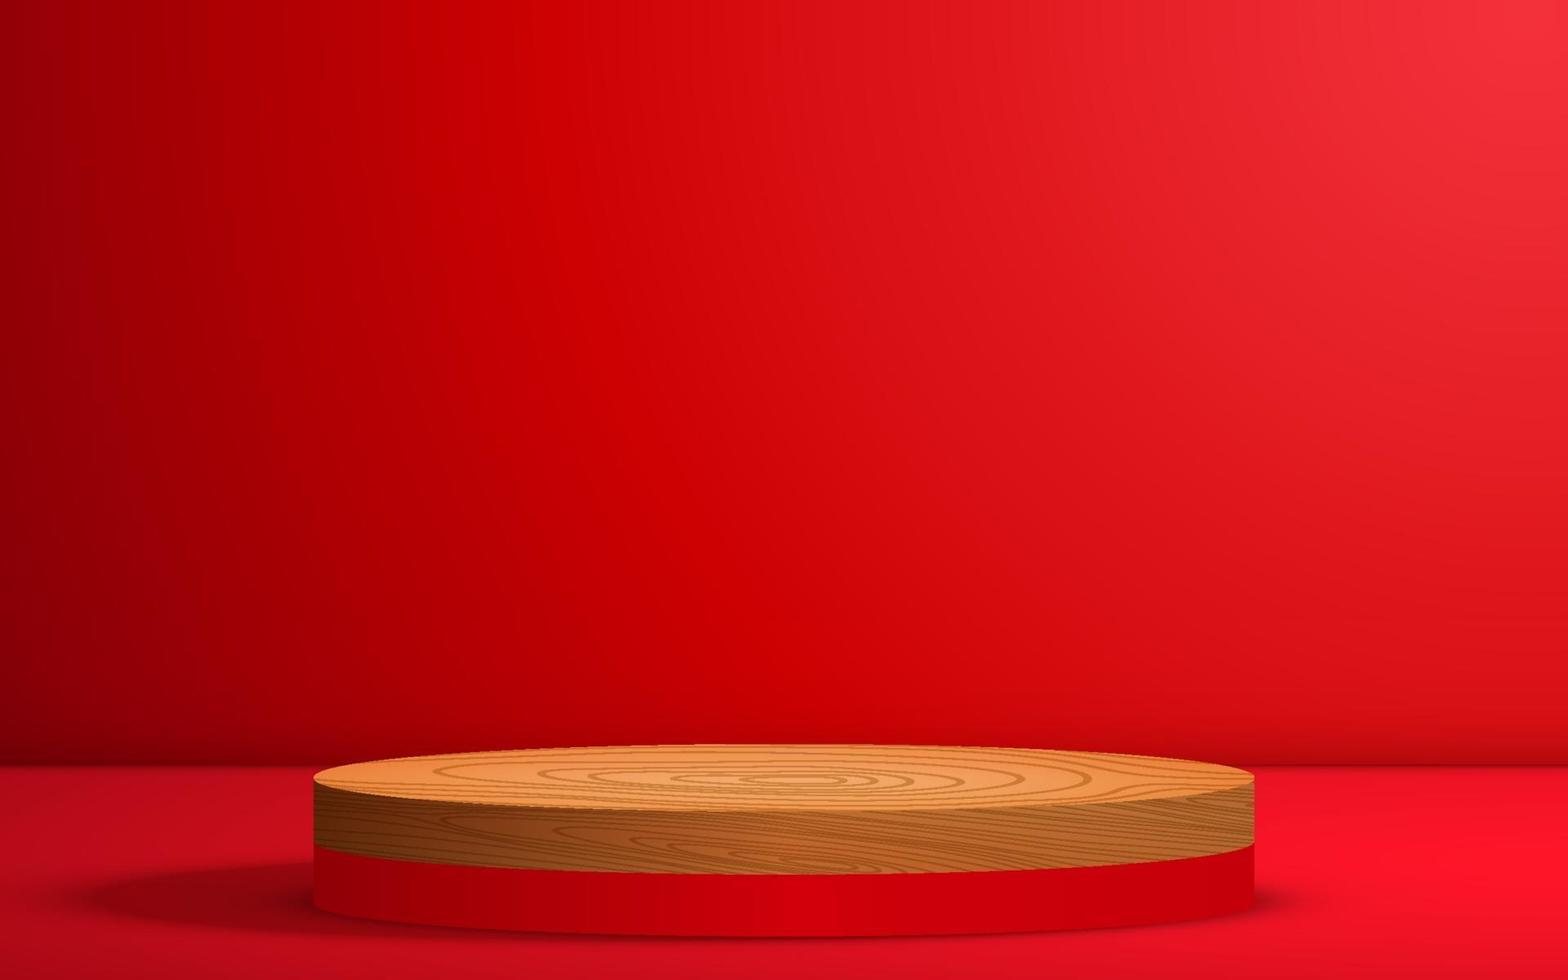 wood podium on the red podium in the red room vector